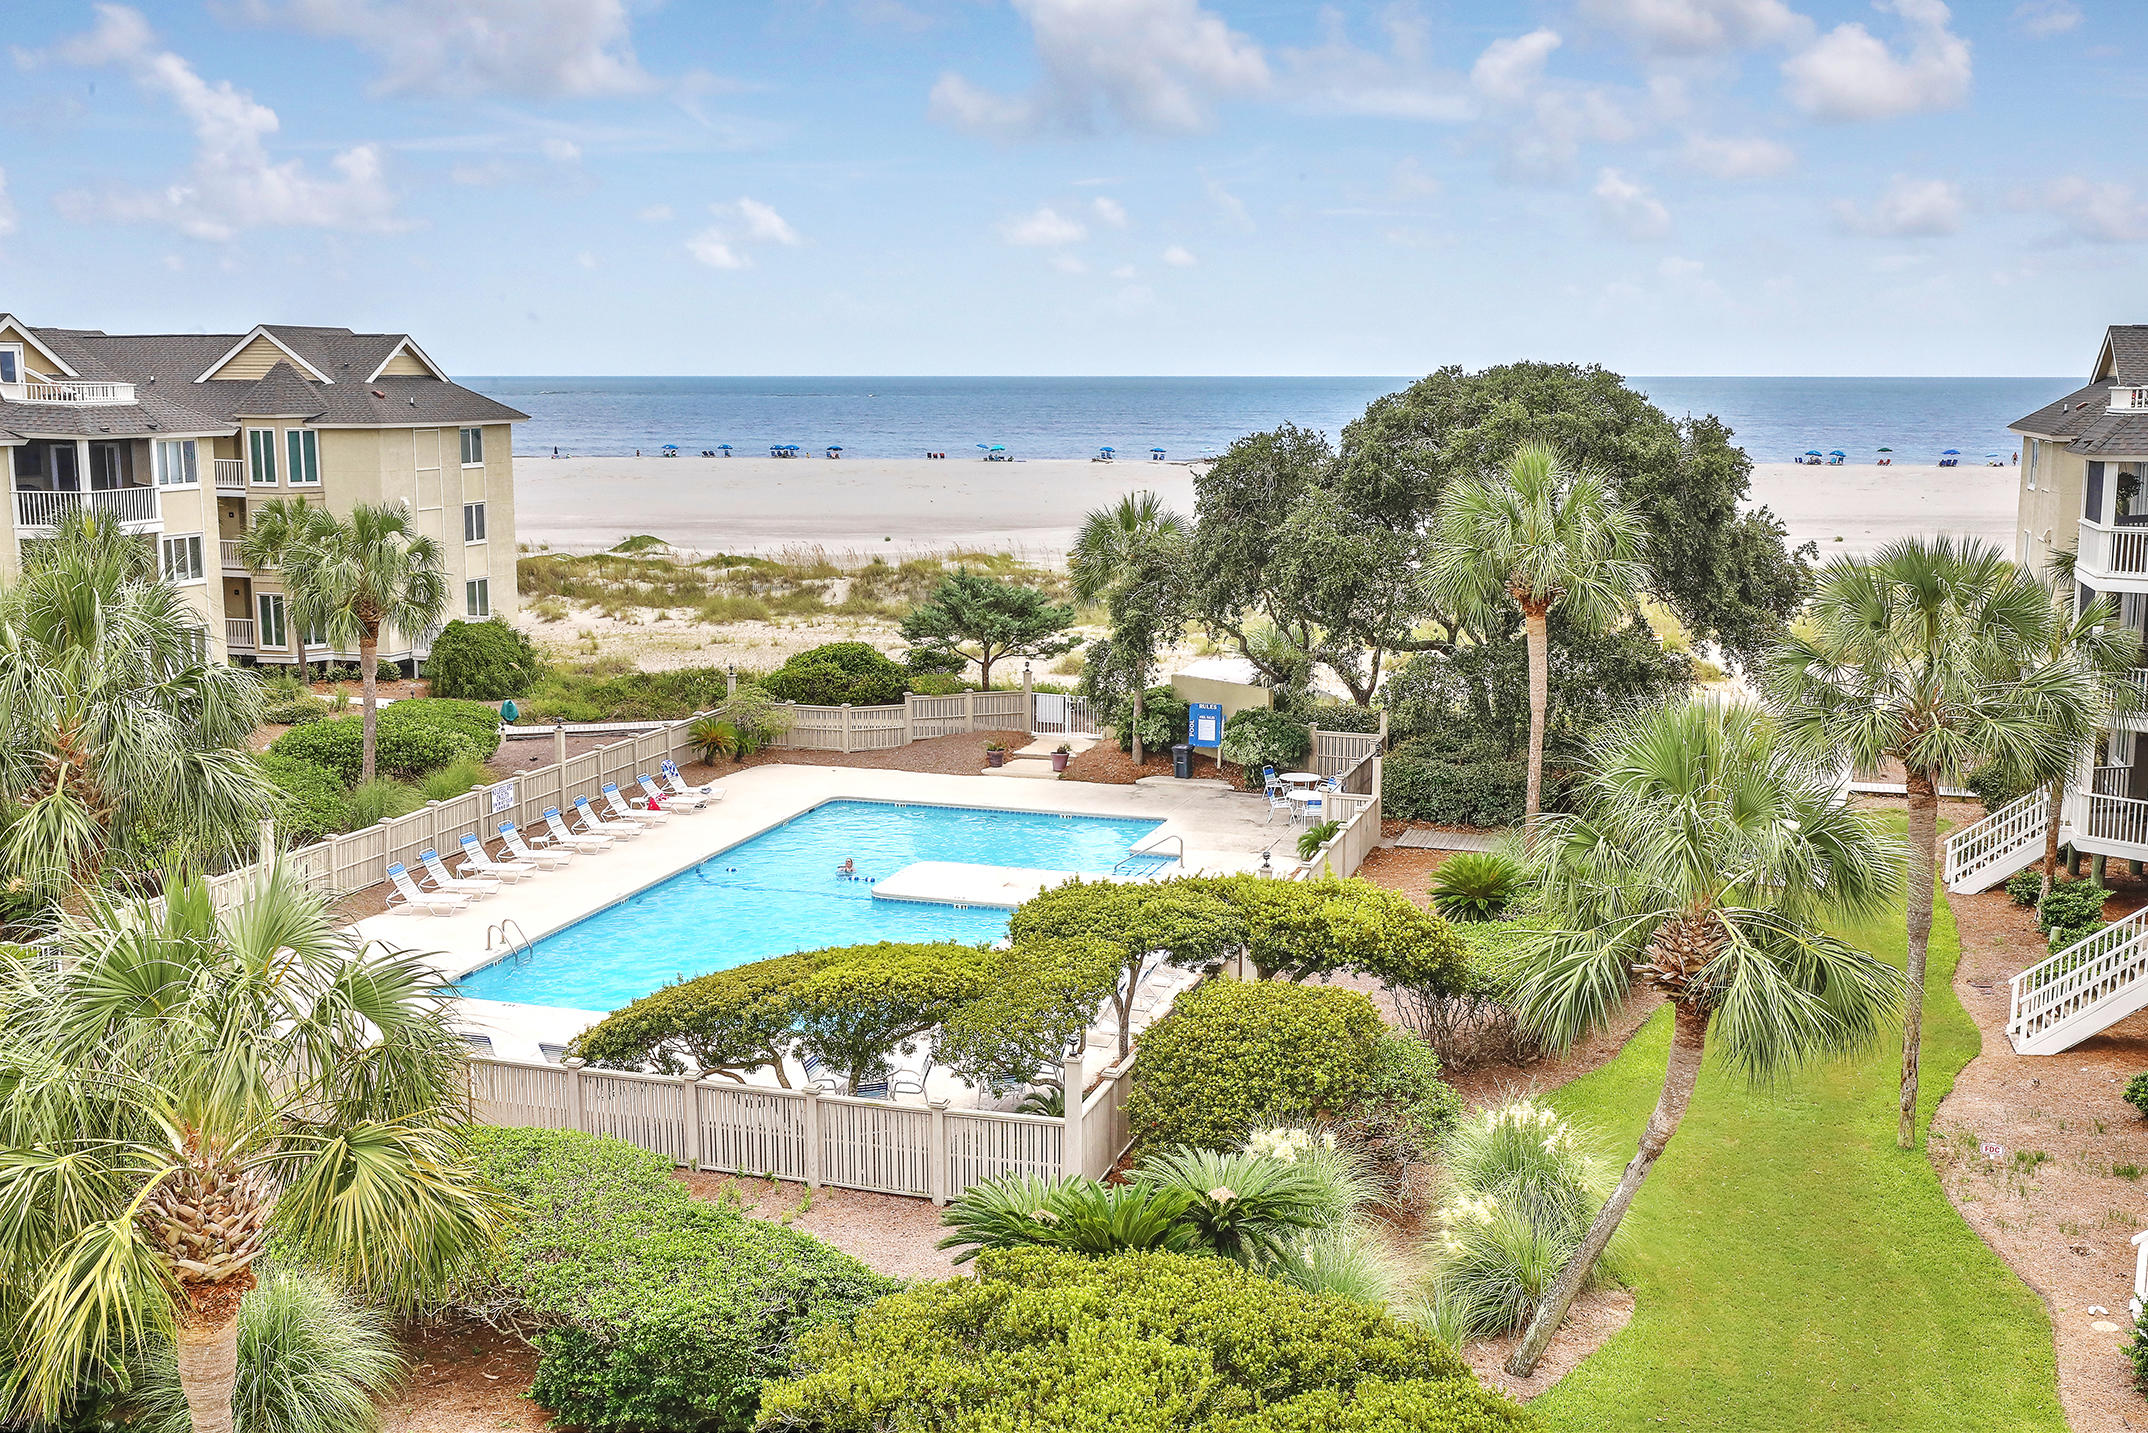 D 301 Port O Call Isle Of Palms, Sc 29451